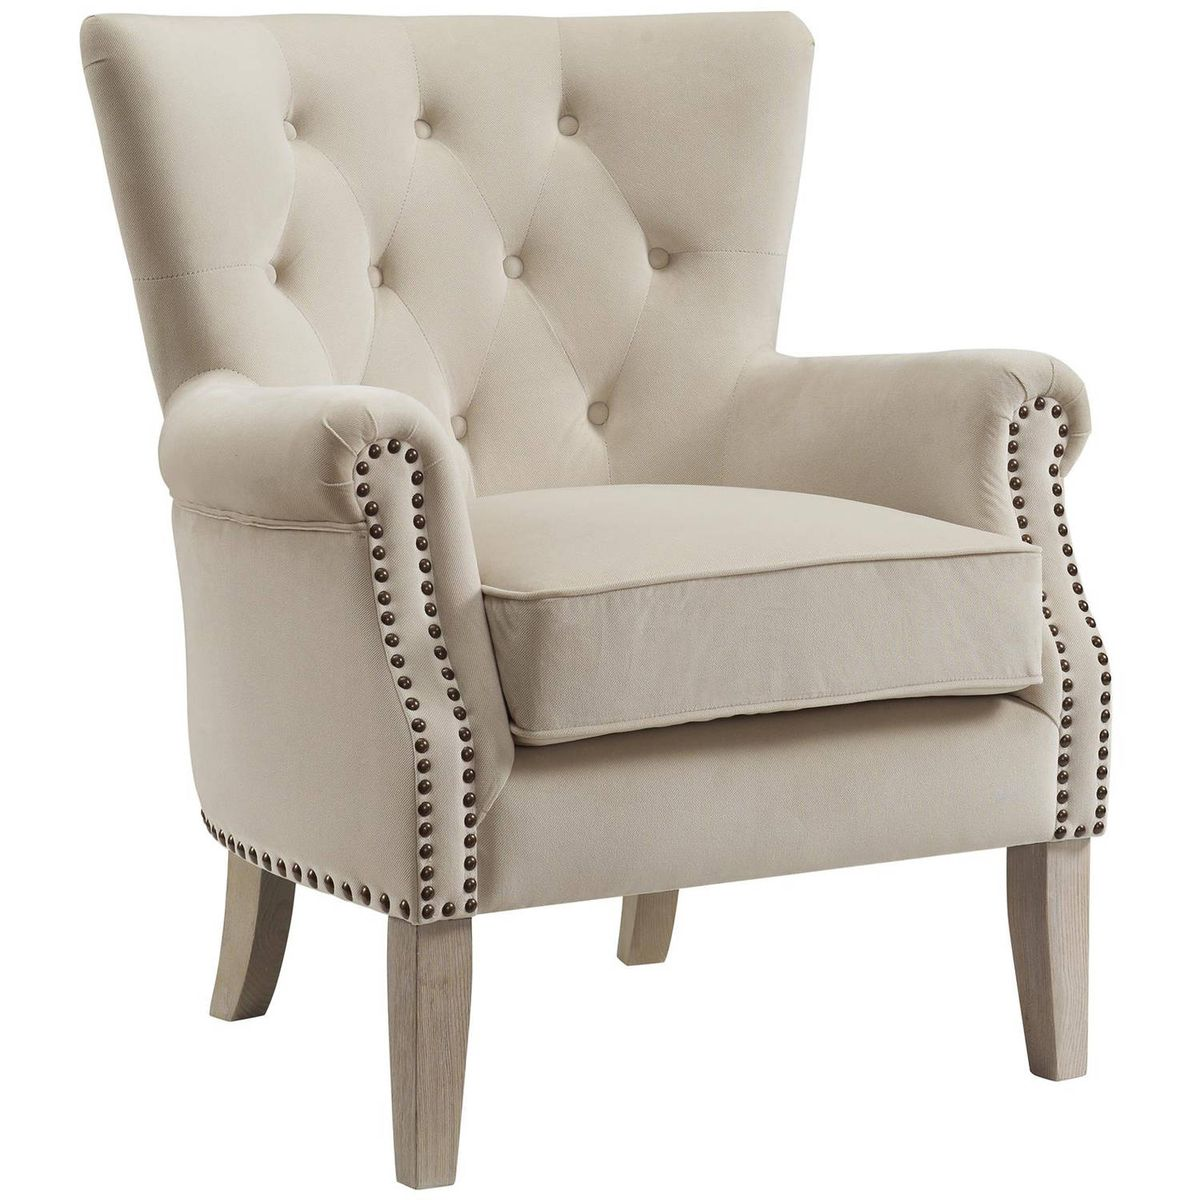 Best Accent Chairs Under 600 Curbed